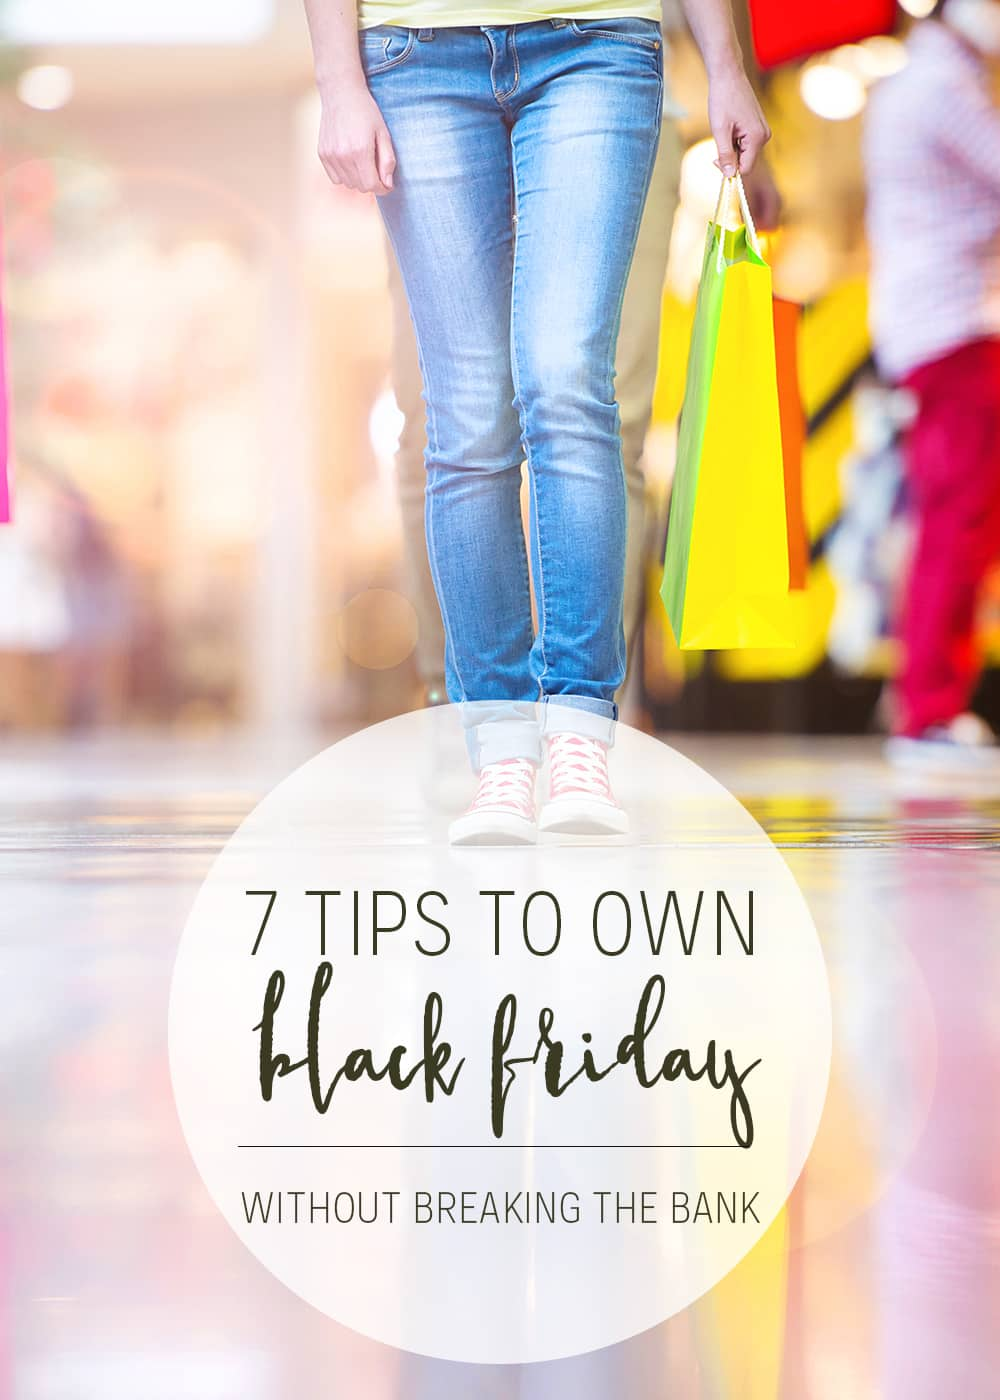 Looking to save money this Black Friday? Apply these 7 tips to shop like a boss and not lose your shirt in the process.